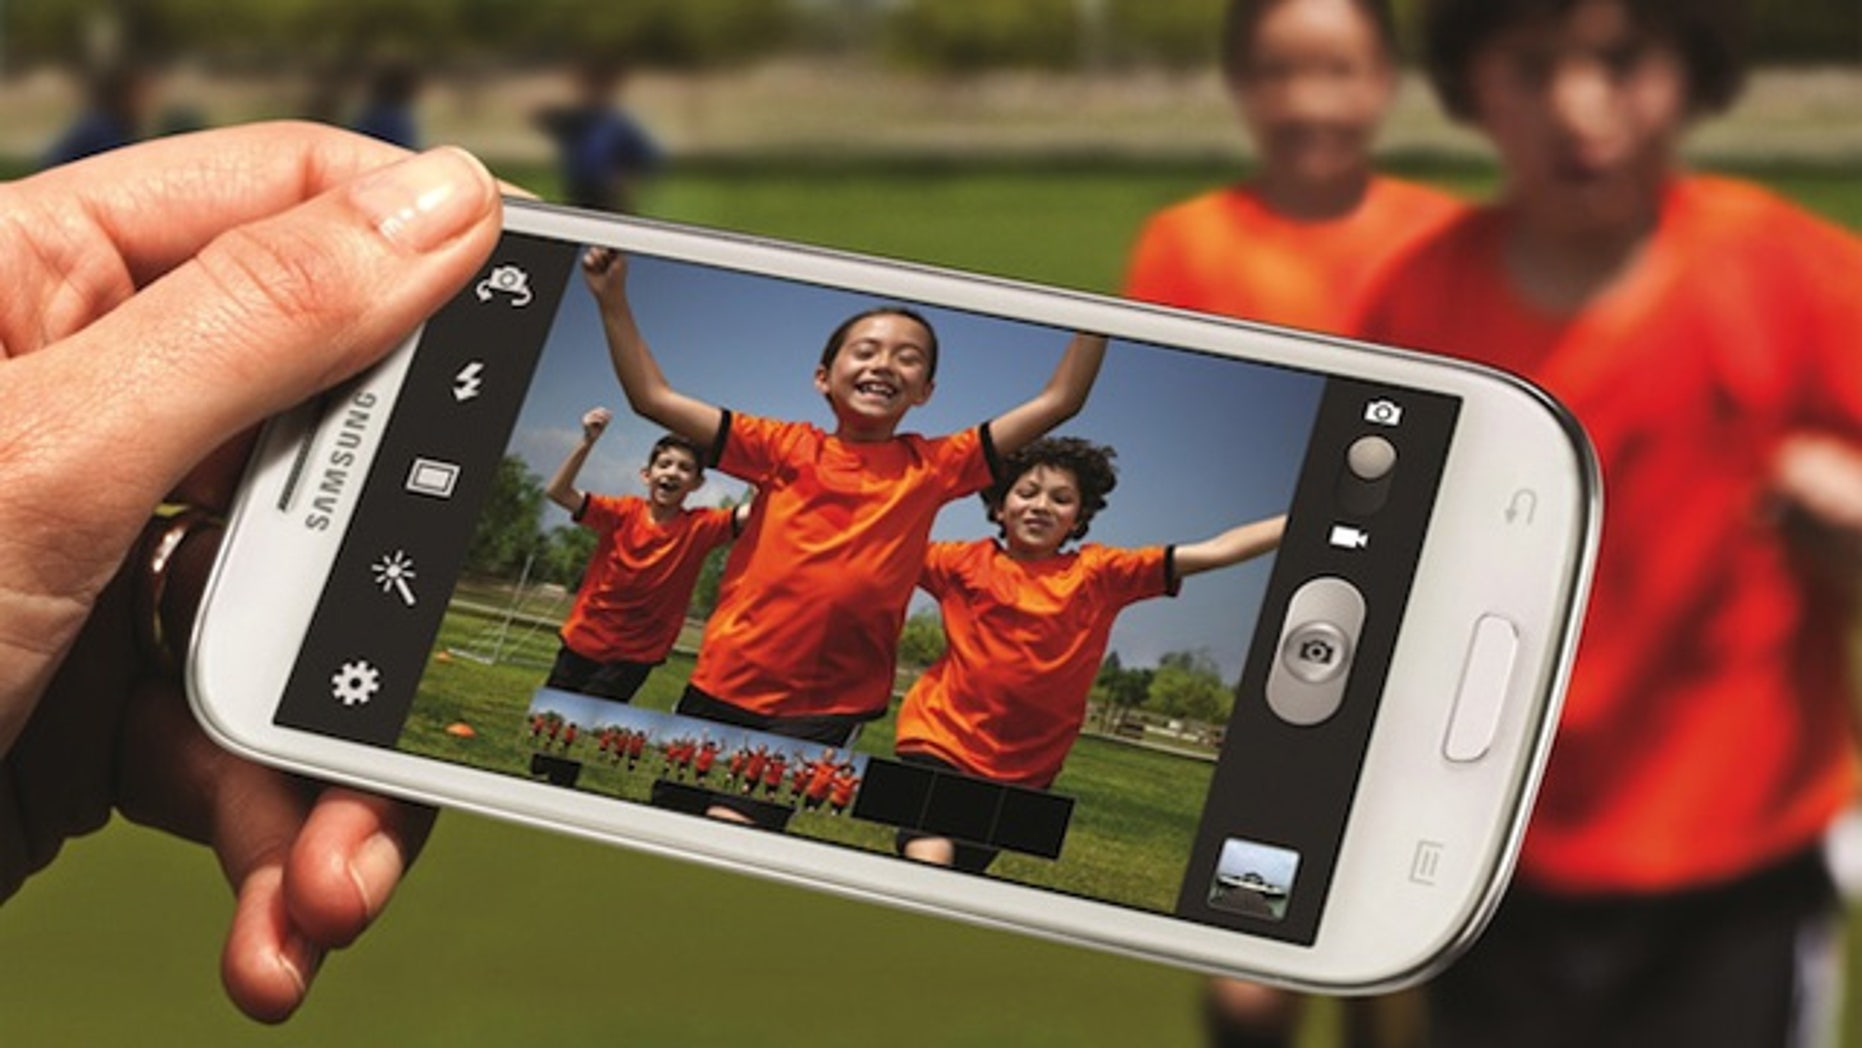 Samsung's next generation Galaxy S has arrived.